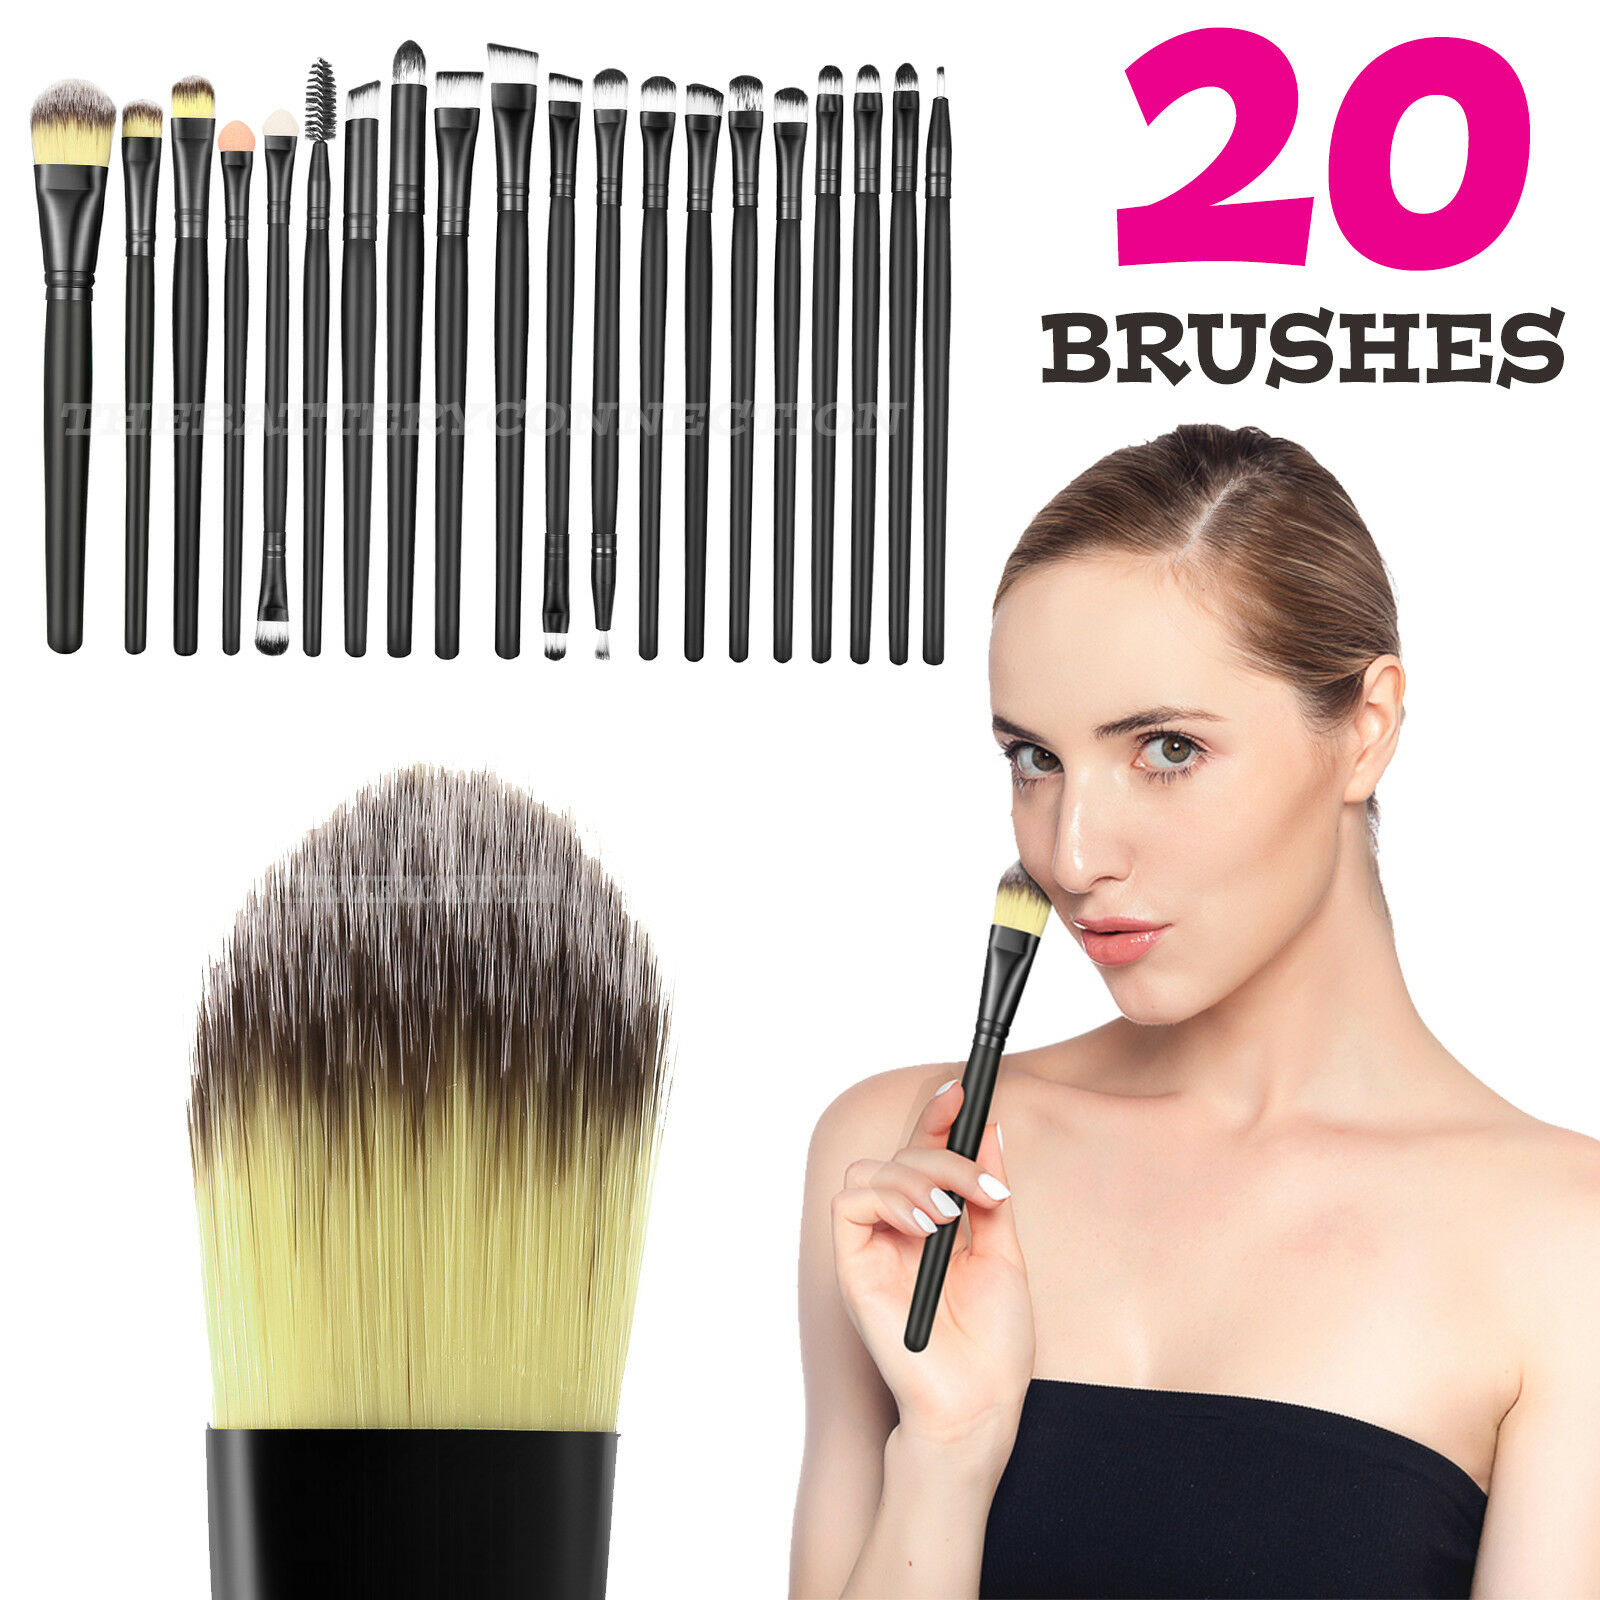 20pcs Makeup BRUSHES Kit Set Powder Foundation Eyeshadow Eyeliner Lip Brush NEW Brushes